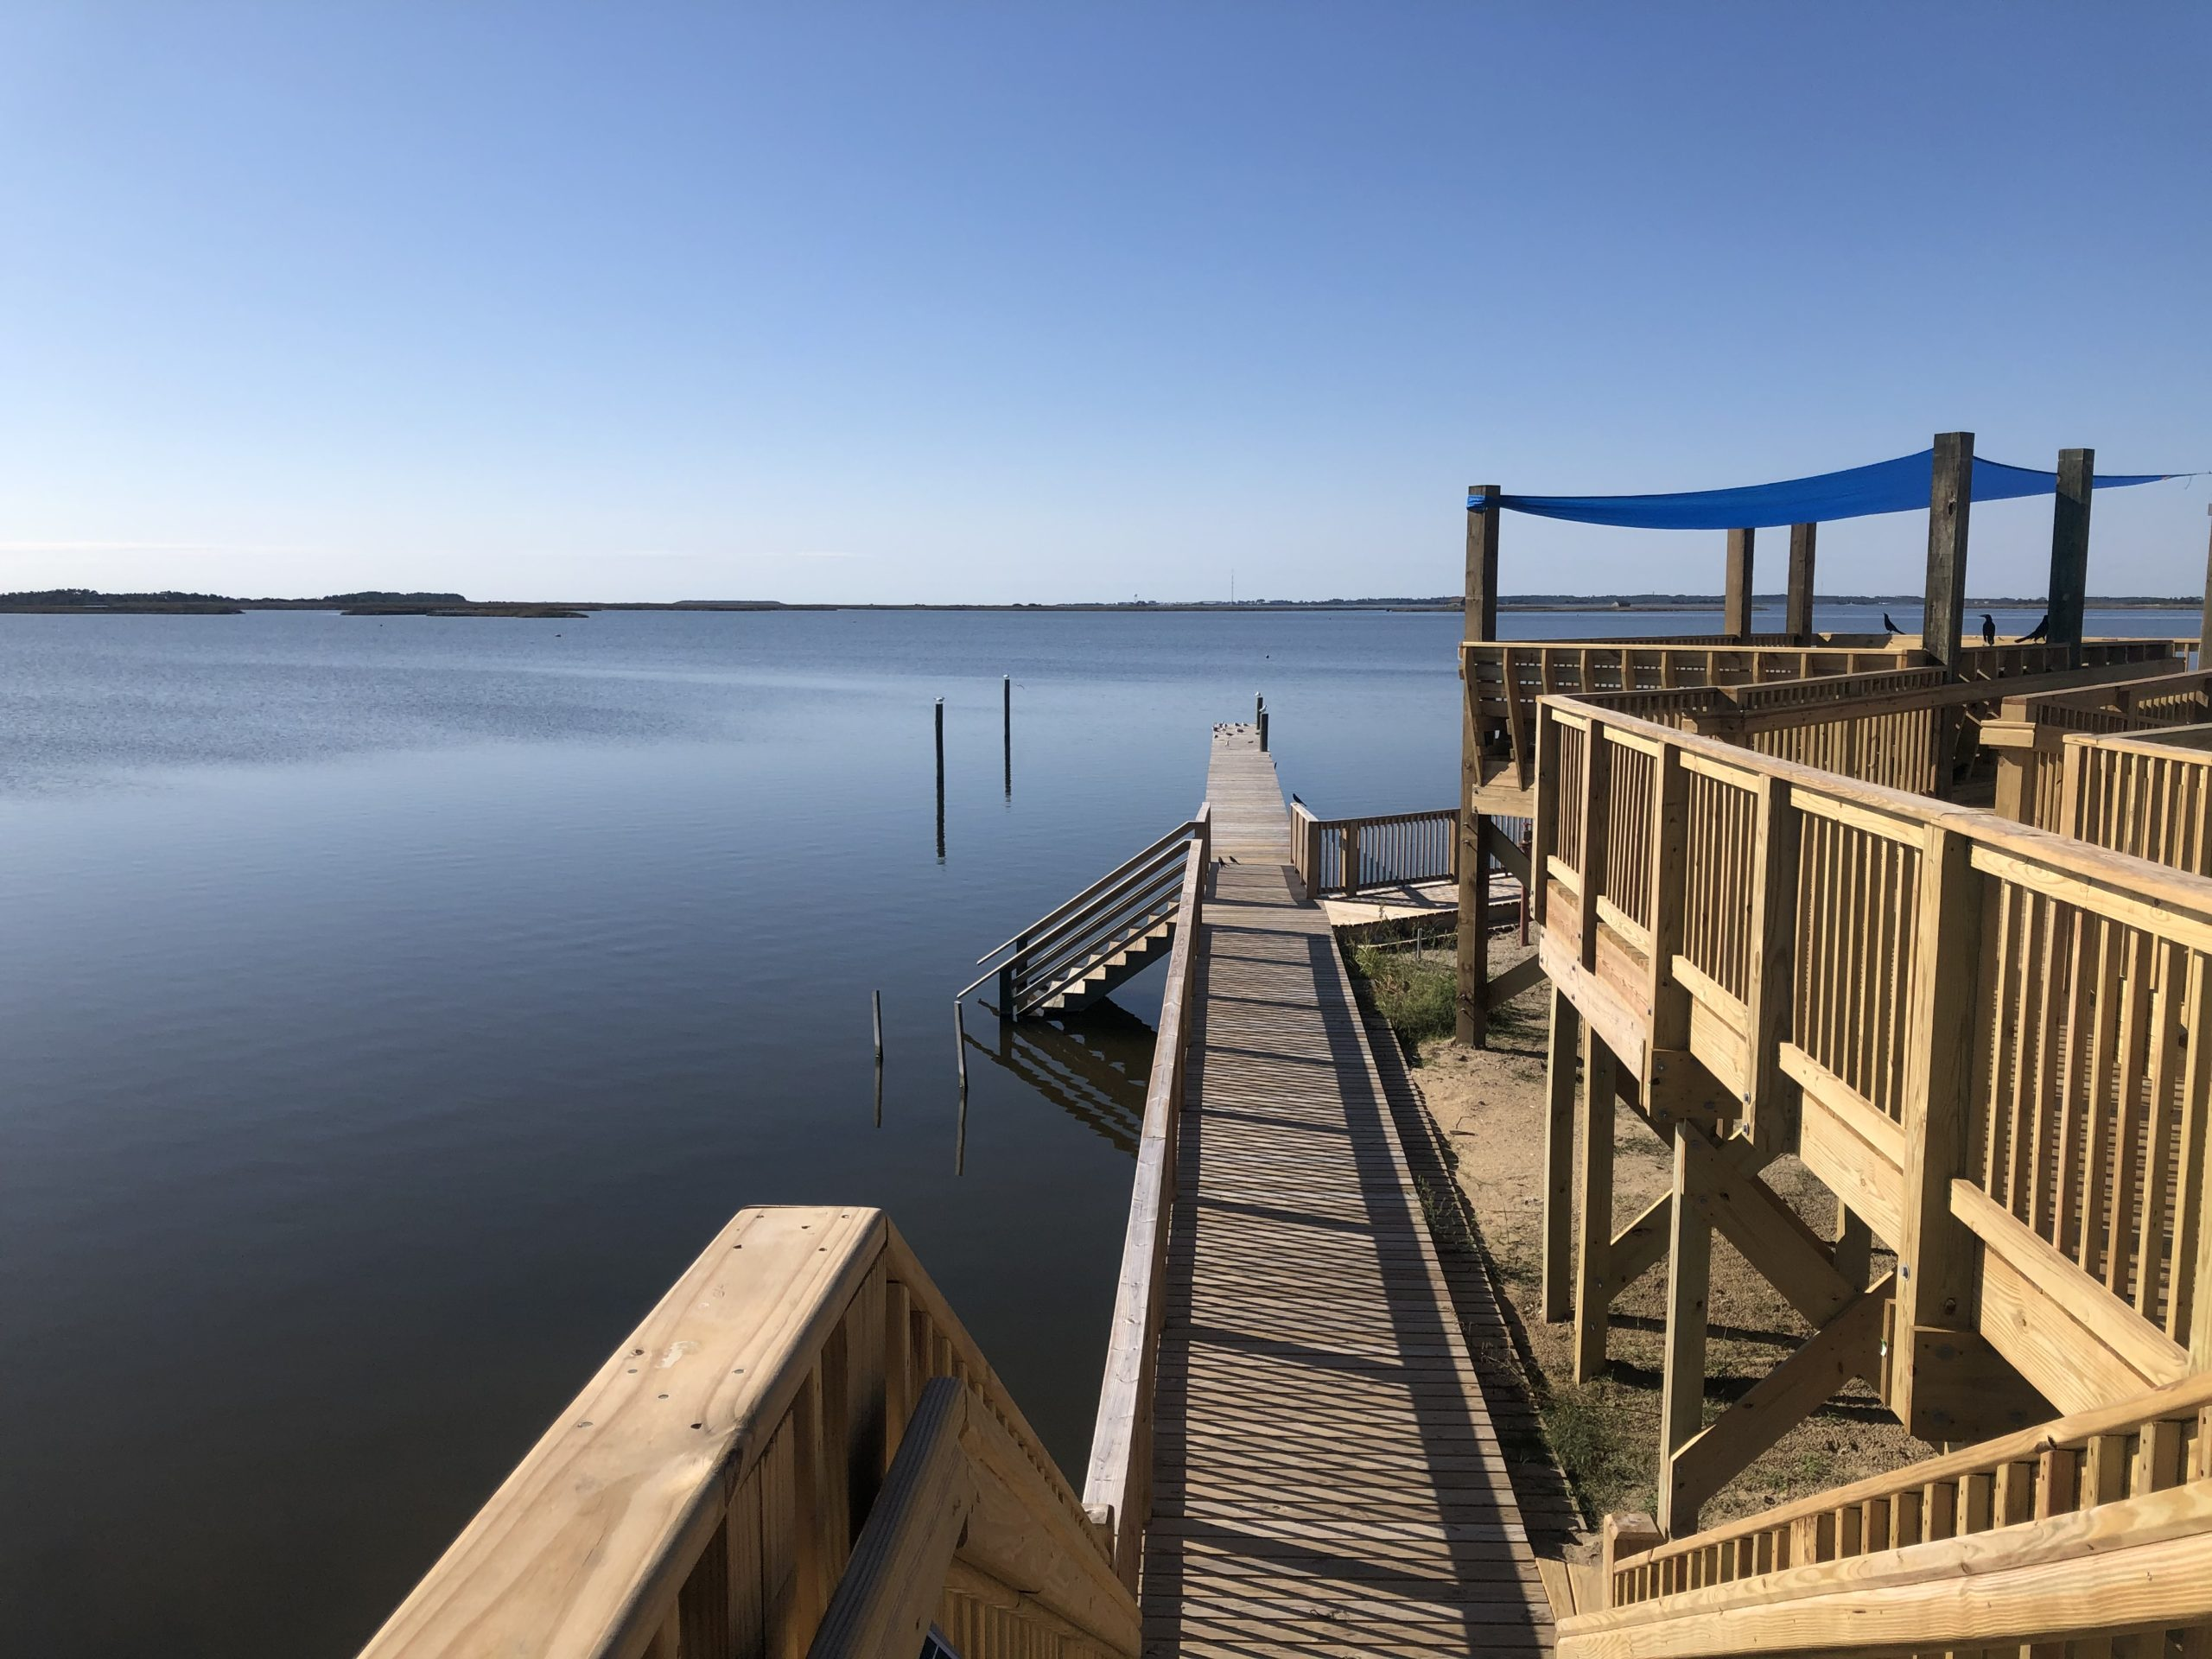 new Whalebone watersports center dock